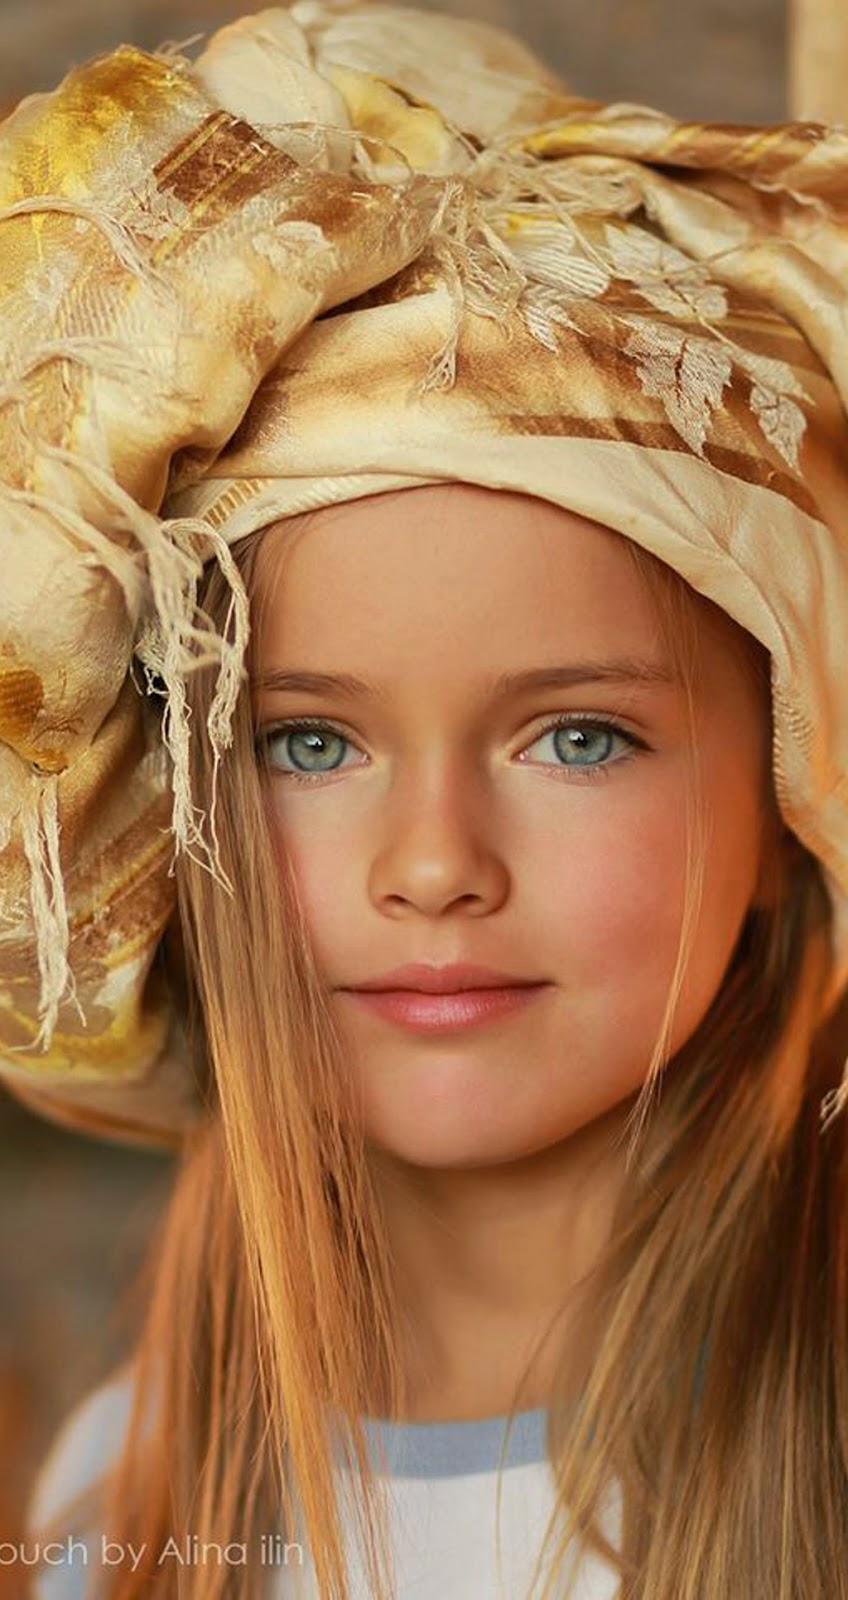 PLUS-CHILD MODEL FROM RUSSIA KRISTINA-PIMENOVA WALLPAPER-1932 X 1024.jpg